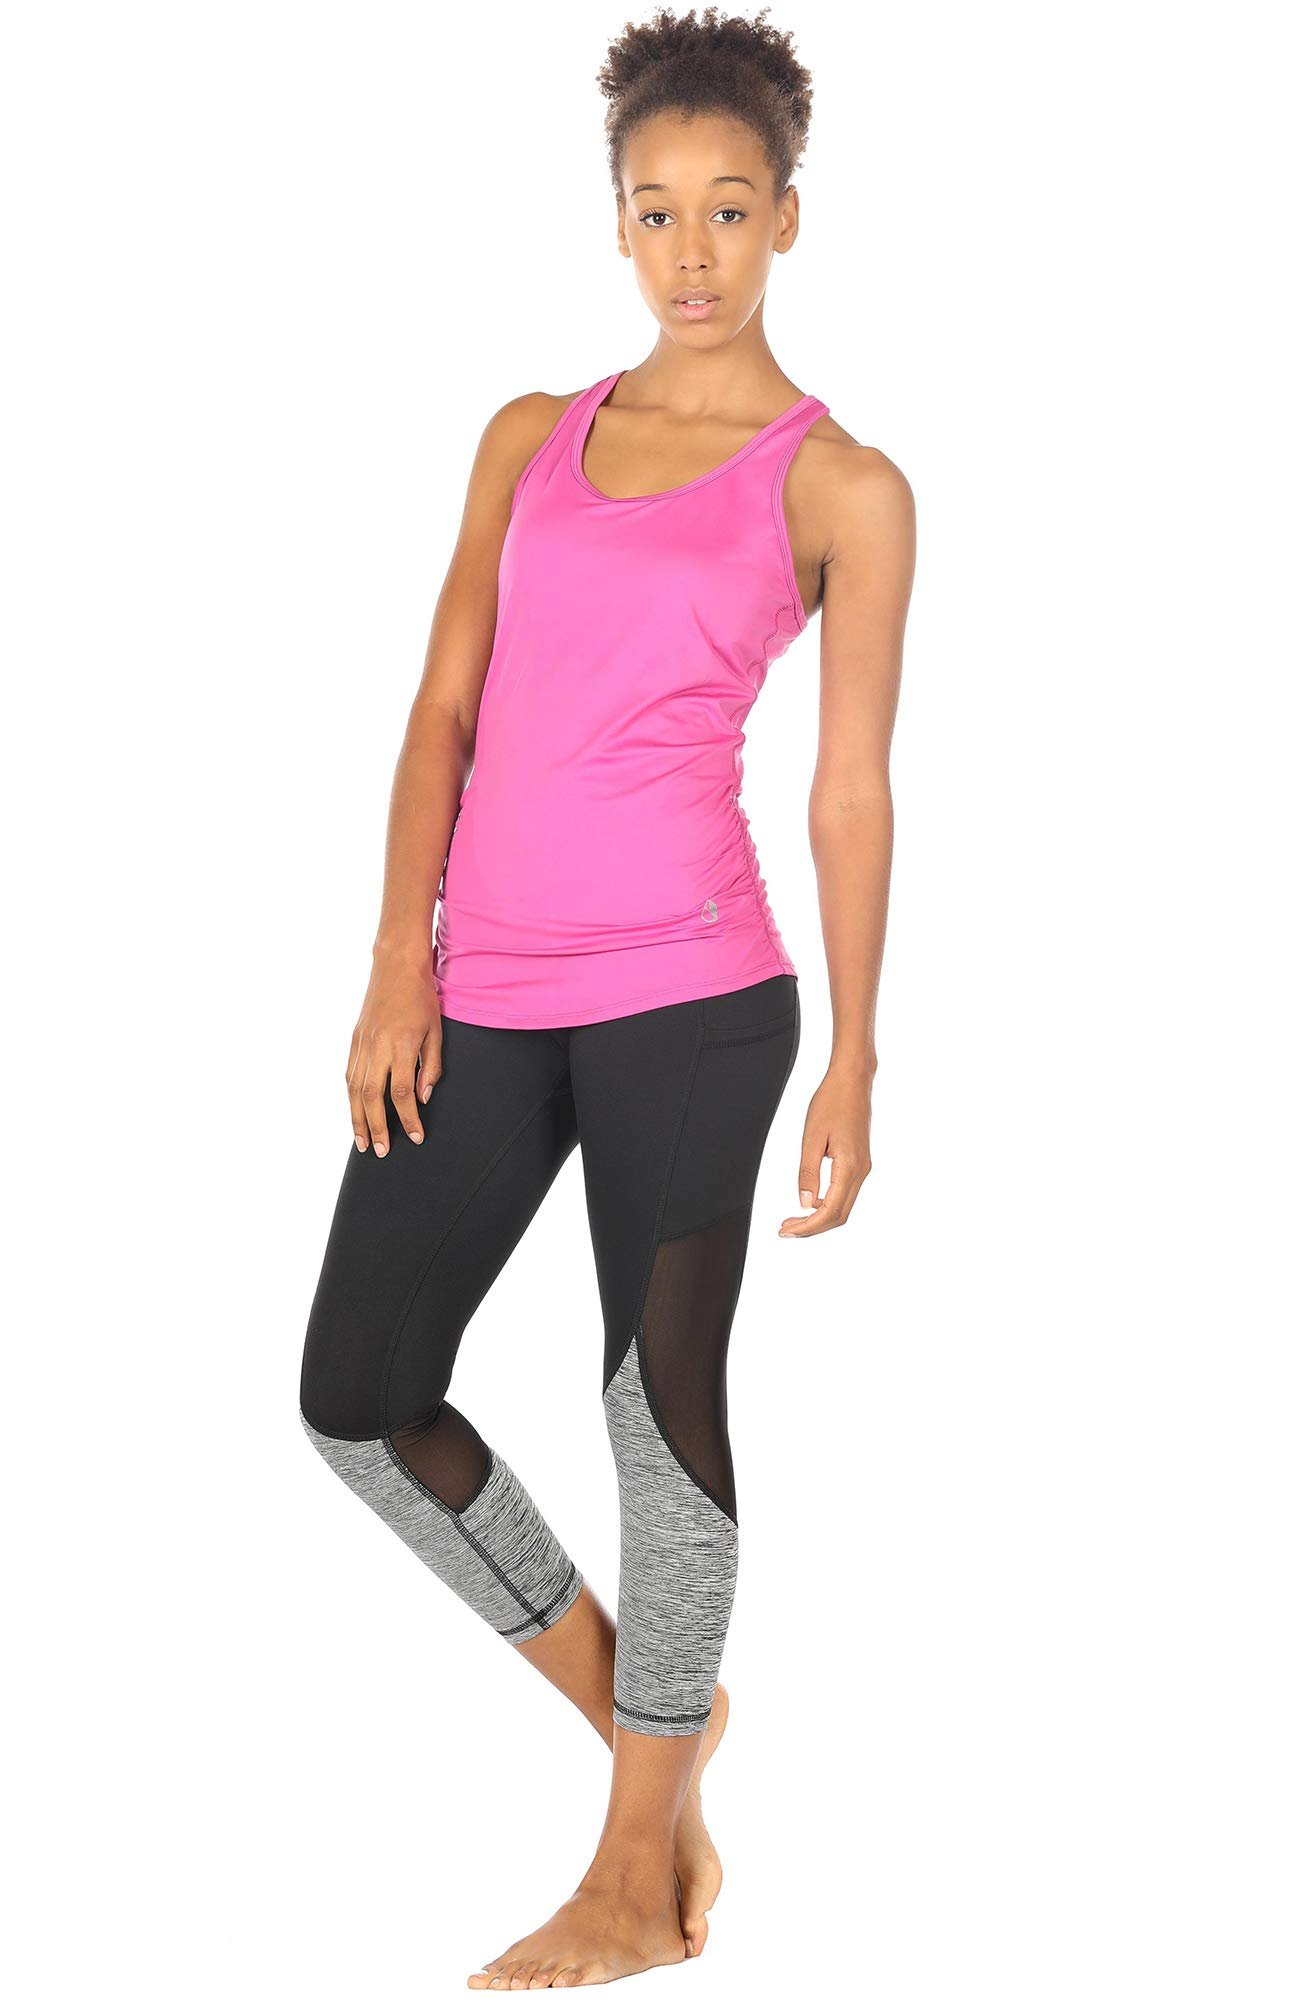 icyzone Women\'s Yoga shirts Sports Tops Super Soft Knit Cowl Back Tank (M, Rose Violet)